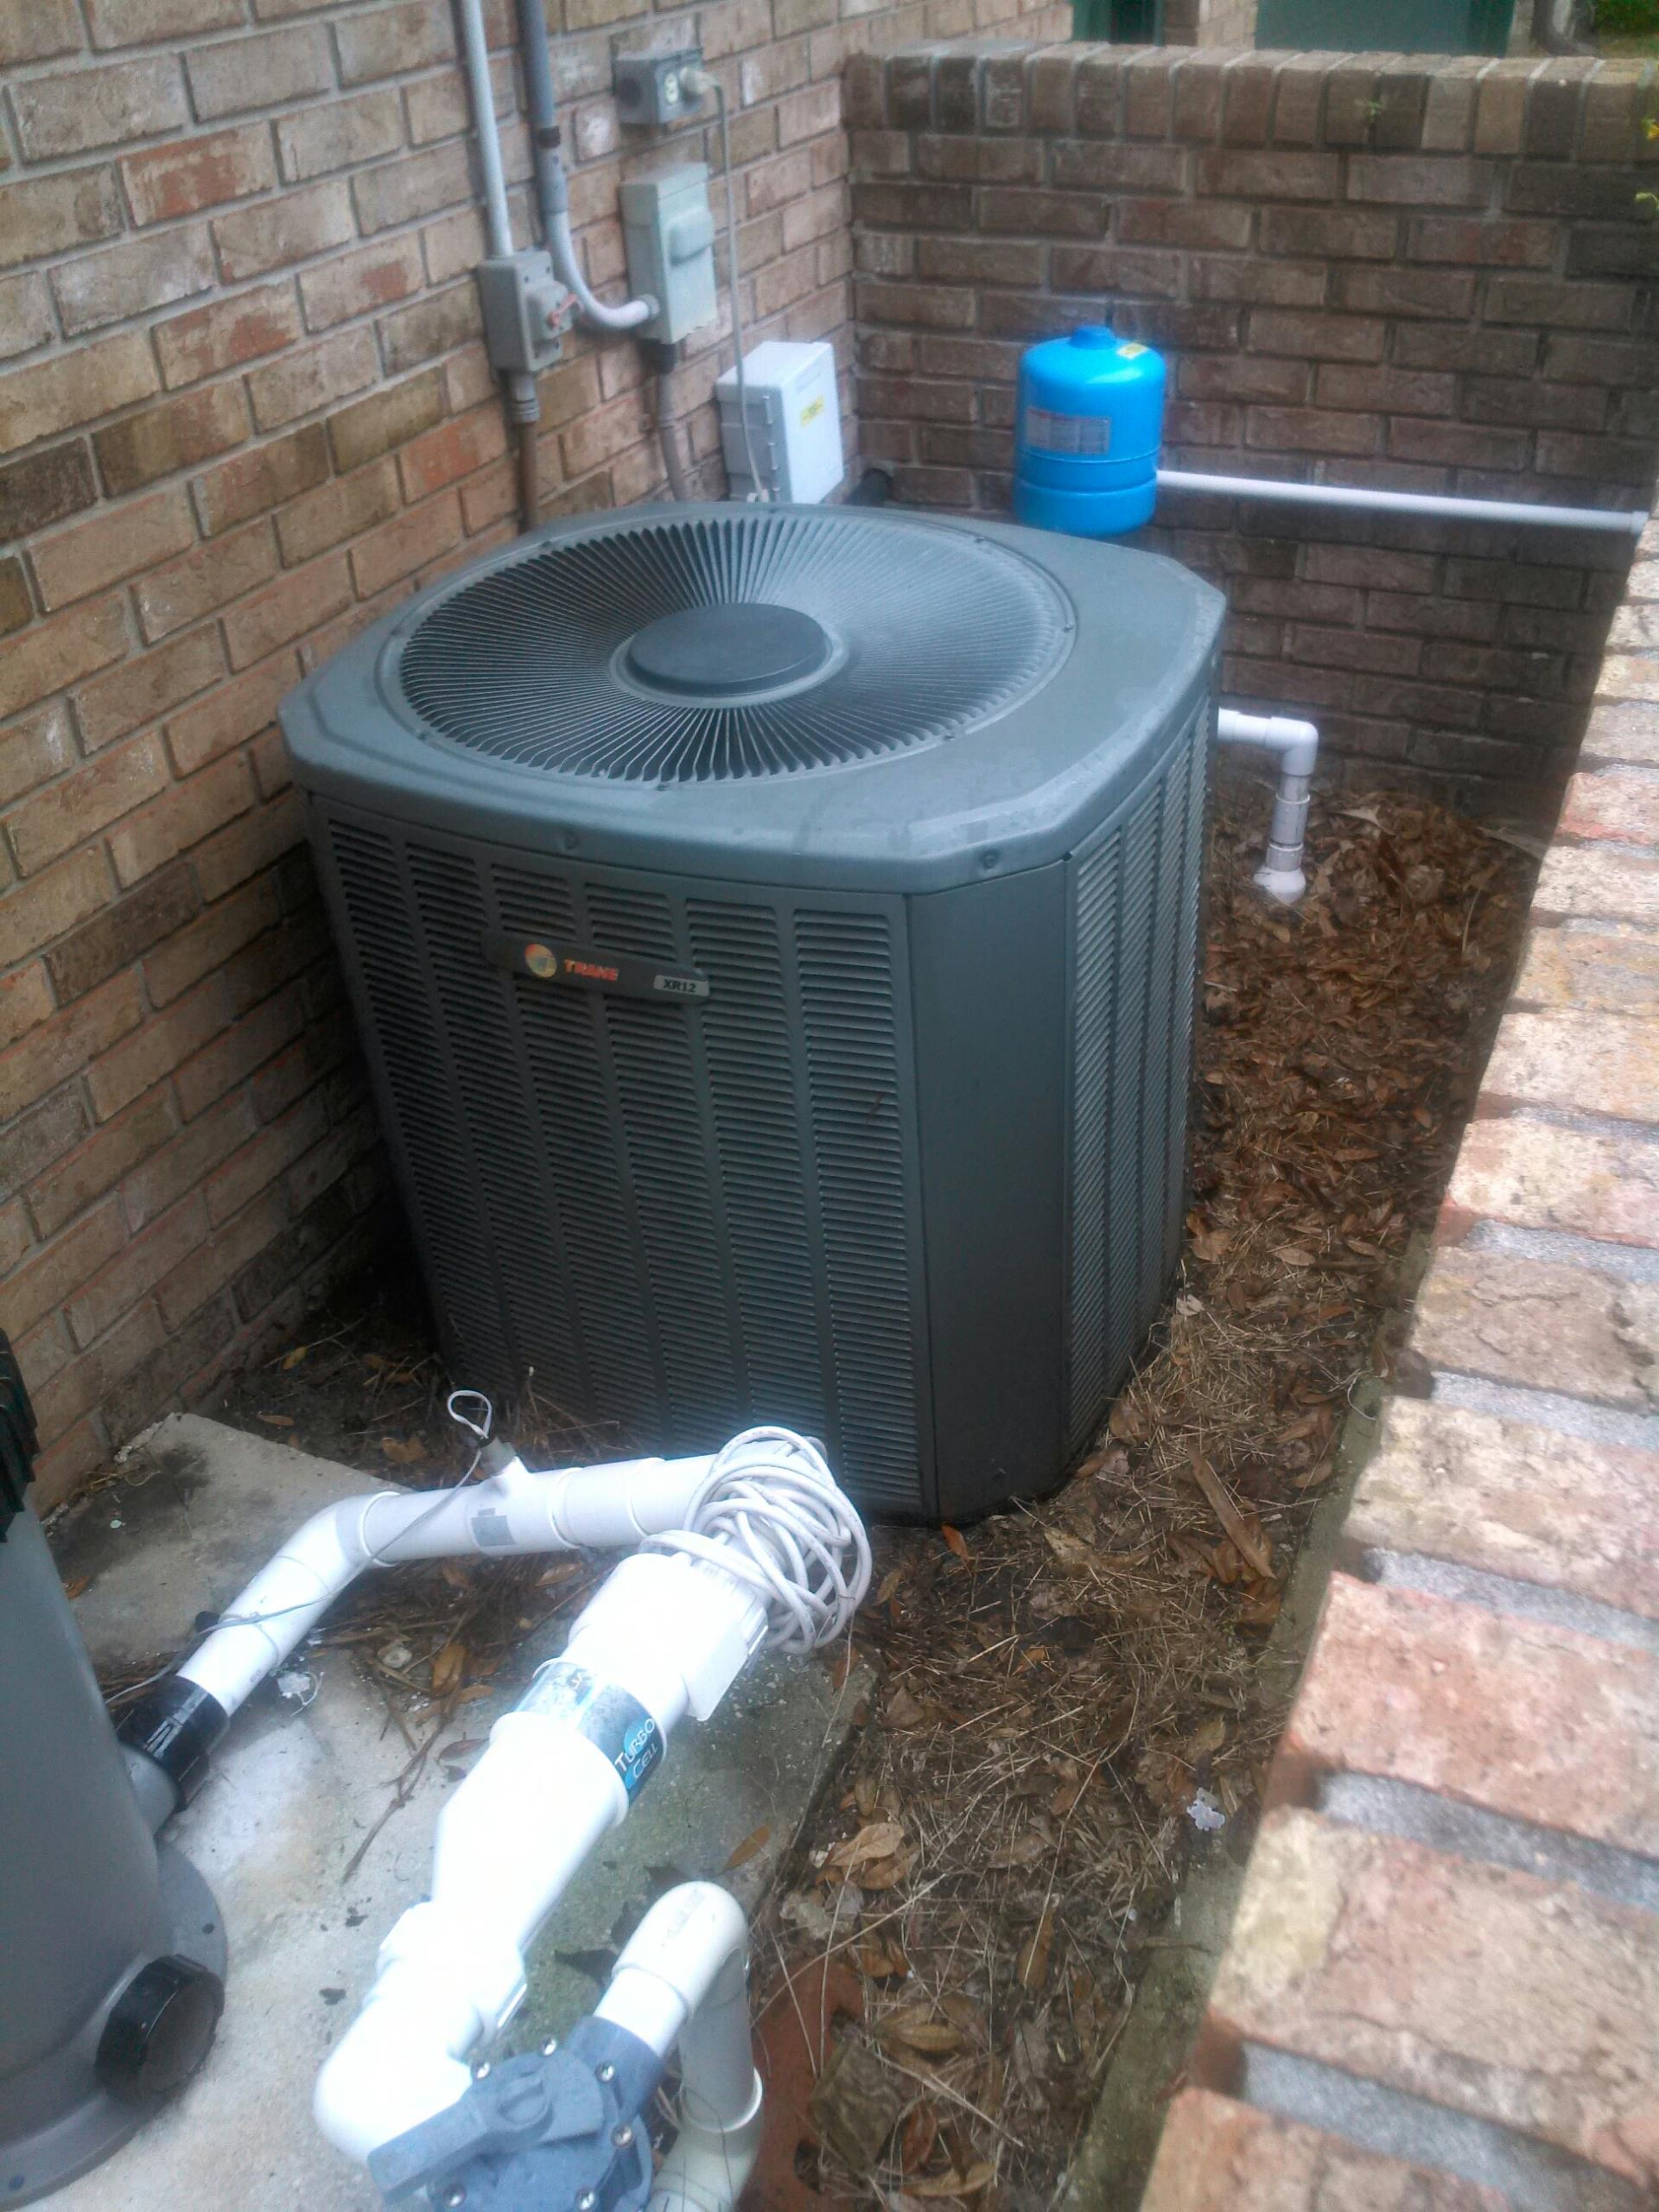 Atlantic Beach, FL - Performed maintenance on two Trane heat pump systems